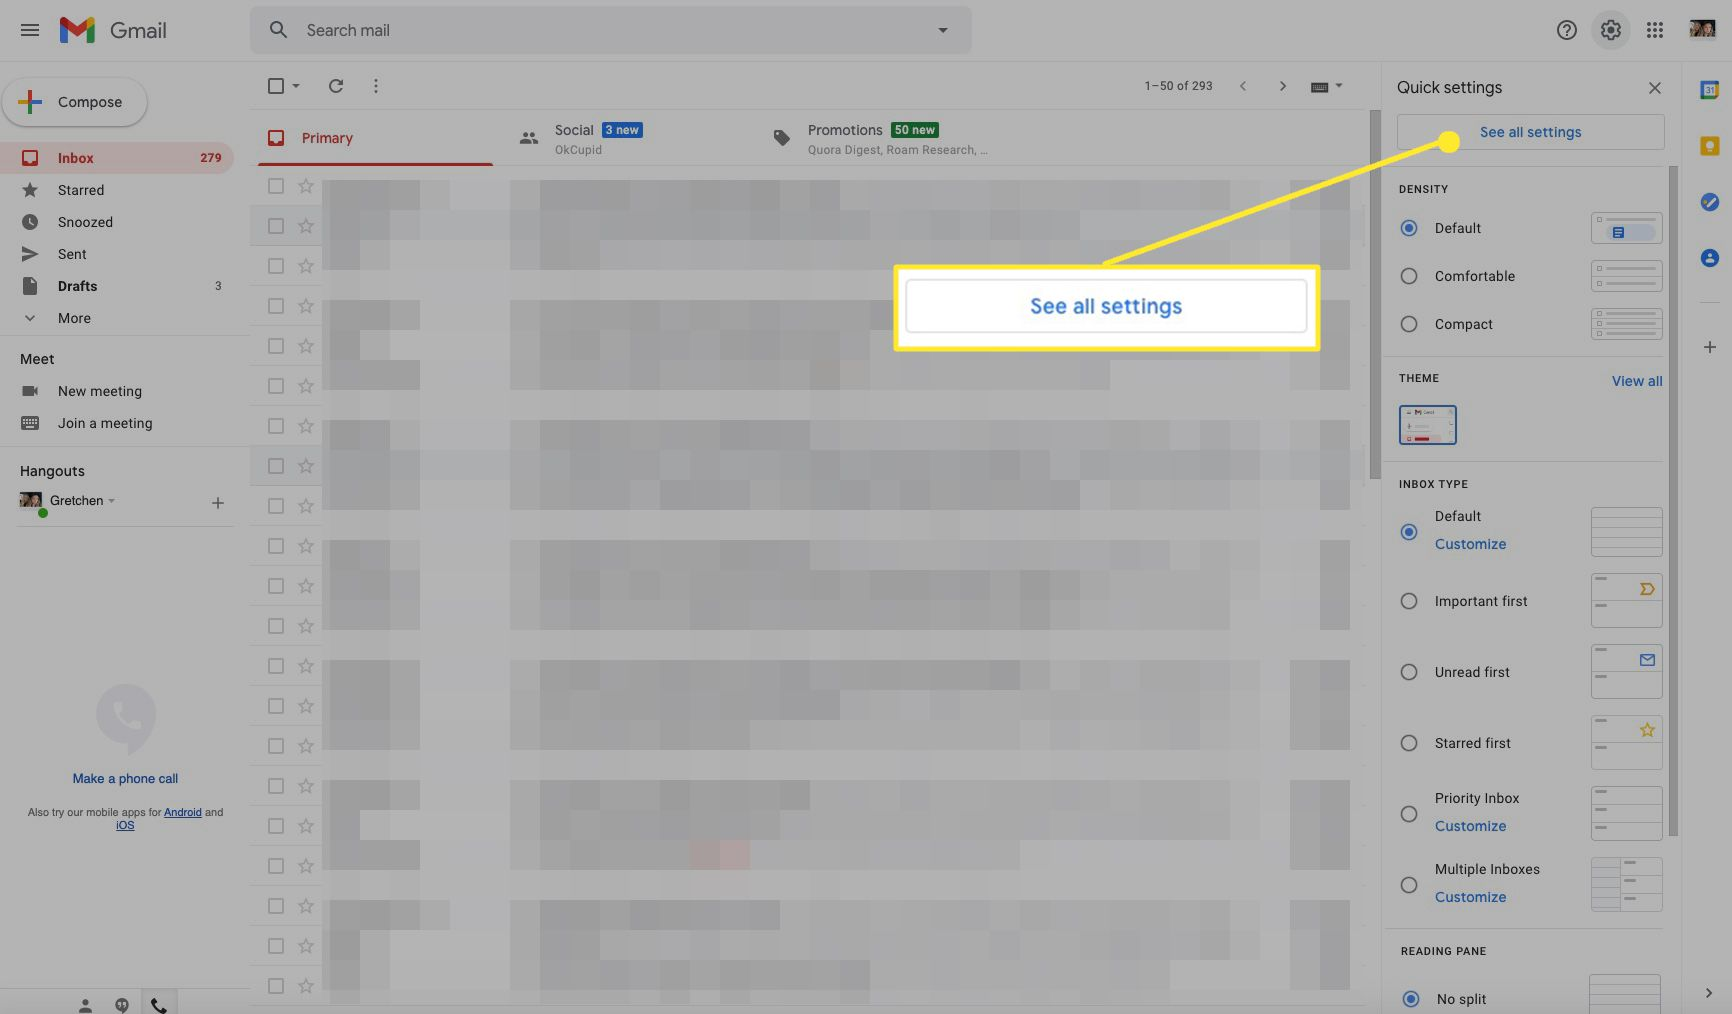 Gmail Settings with See all Settings highlighted